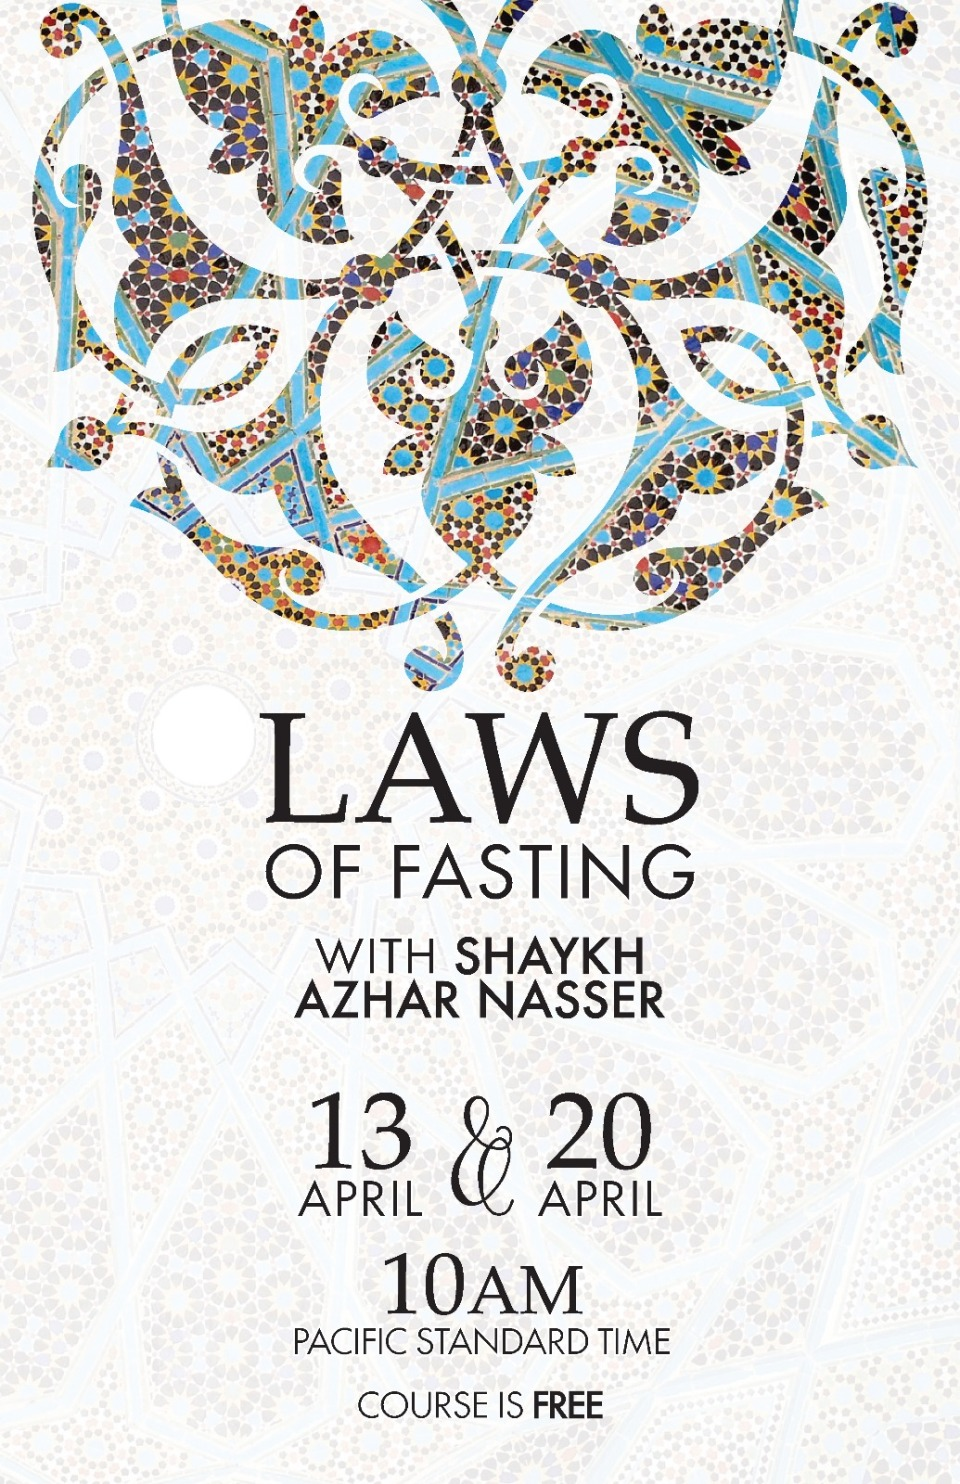 fasting flyer